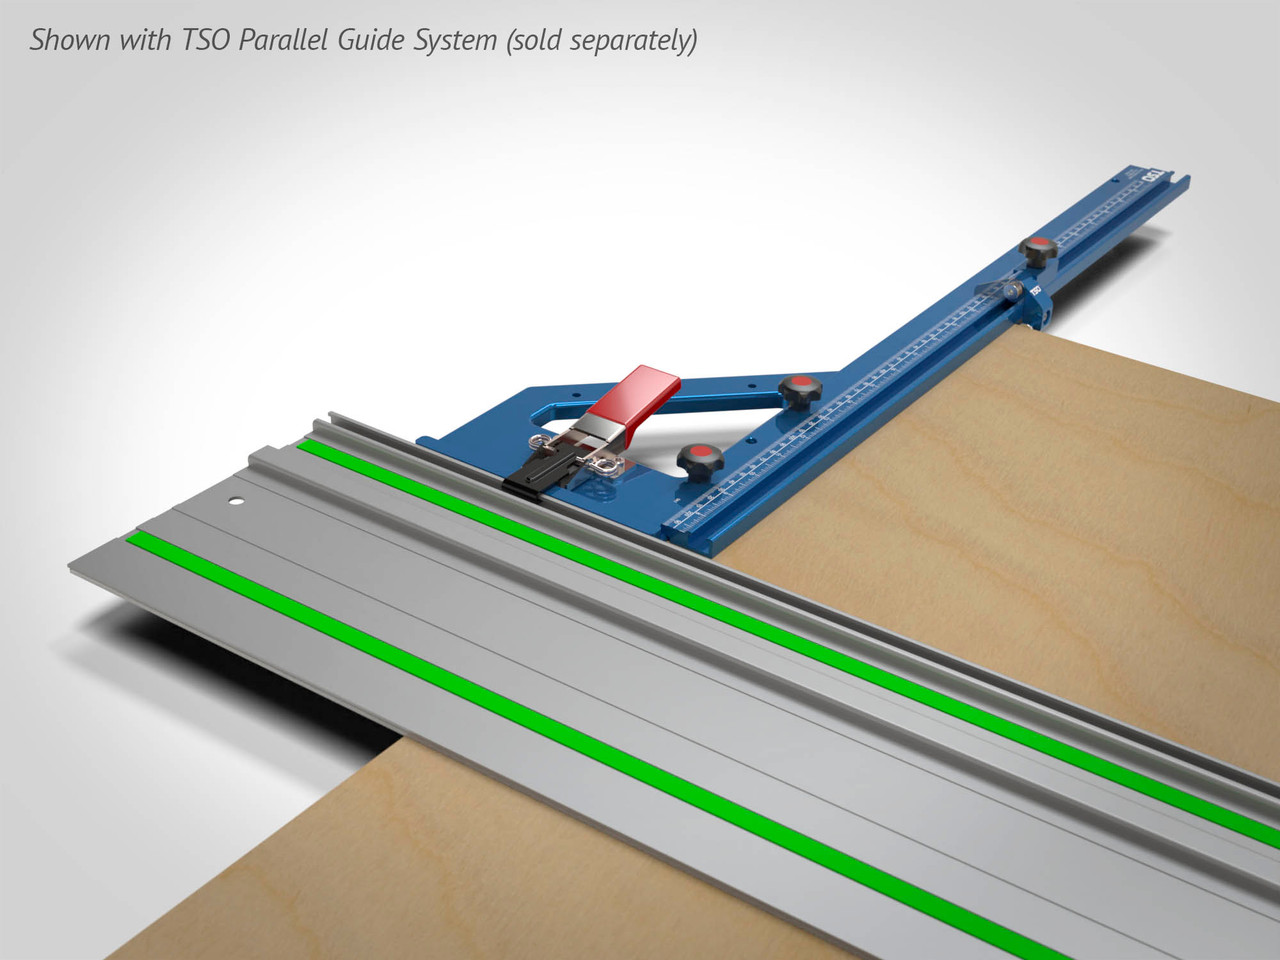 Connects to the TSO Parallel Guide System (sold separately) to enable fast, square, parallel and repeatable cuts!